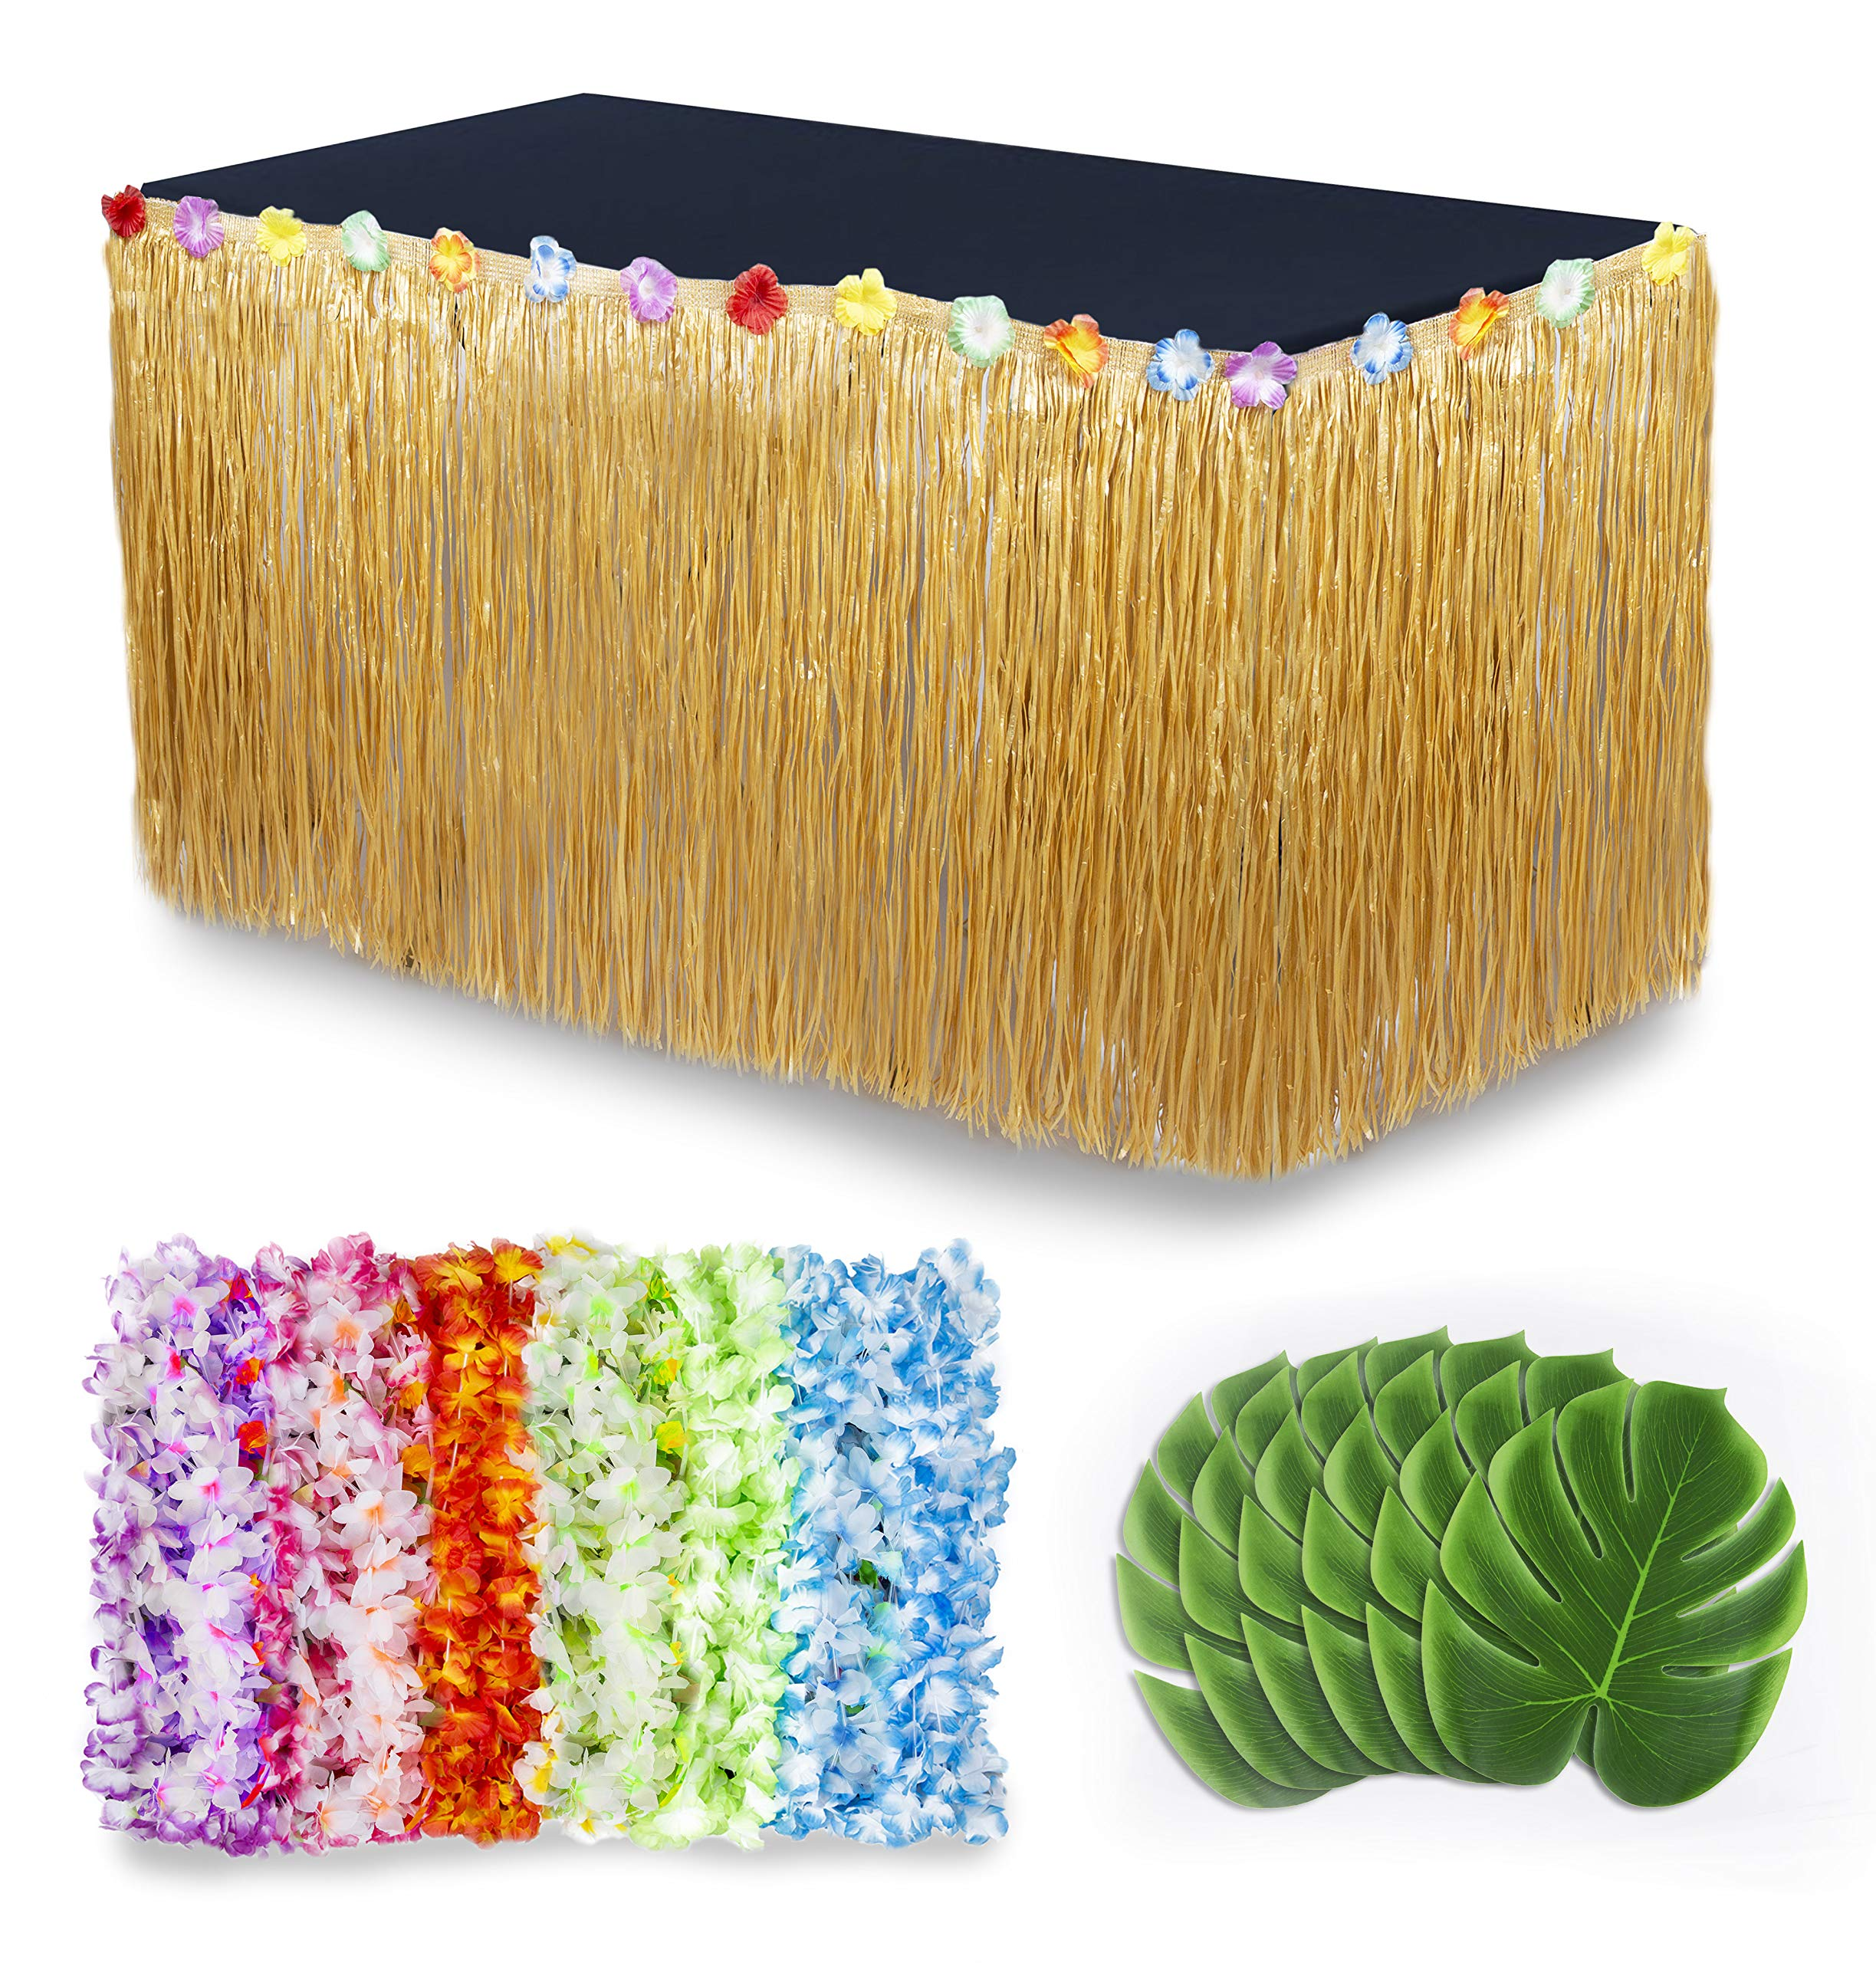 Cocowai Luau Party Decorations/Moana Party Supplies! 36x Flower Hawaiian Leis, Tropical Leaves Decoration and Grass Skirt for Buffet Table - Fun Tiki Bar, Beach Theme or Lilo and Stitch Birthday! by Cocowai